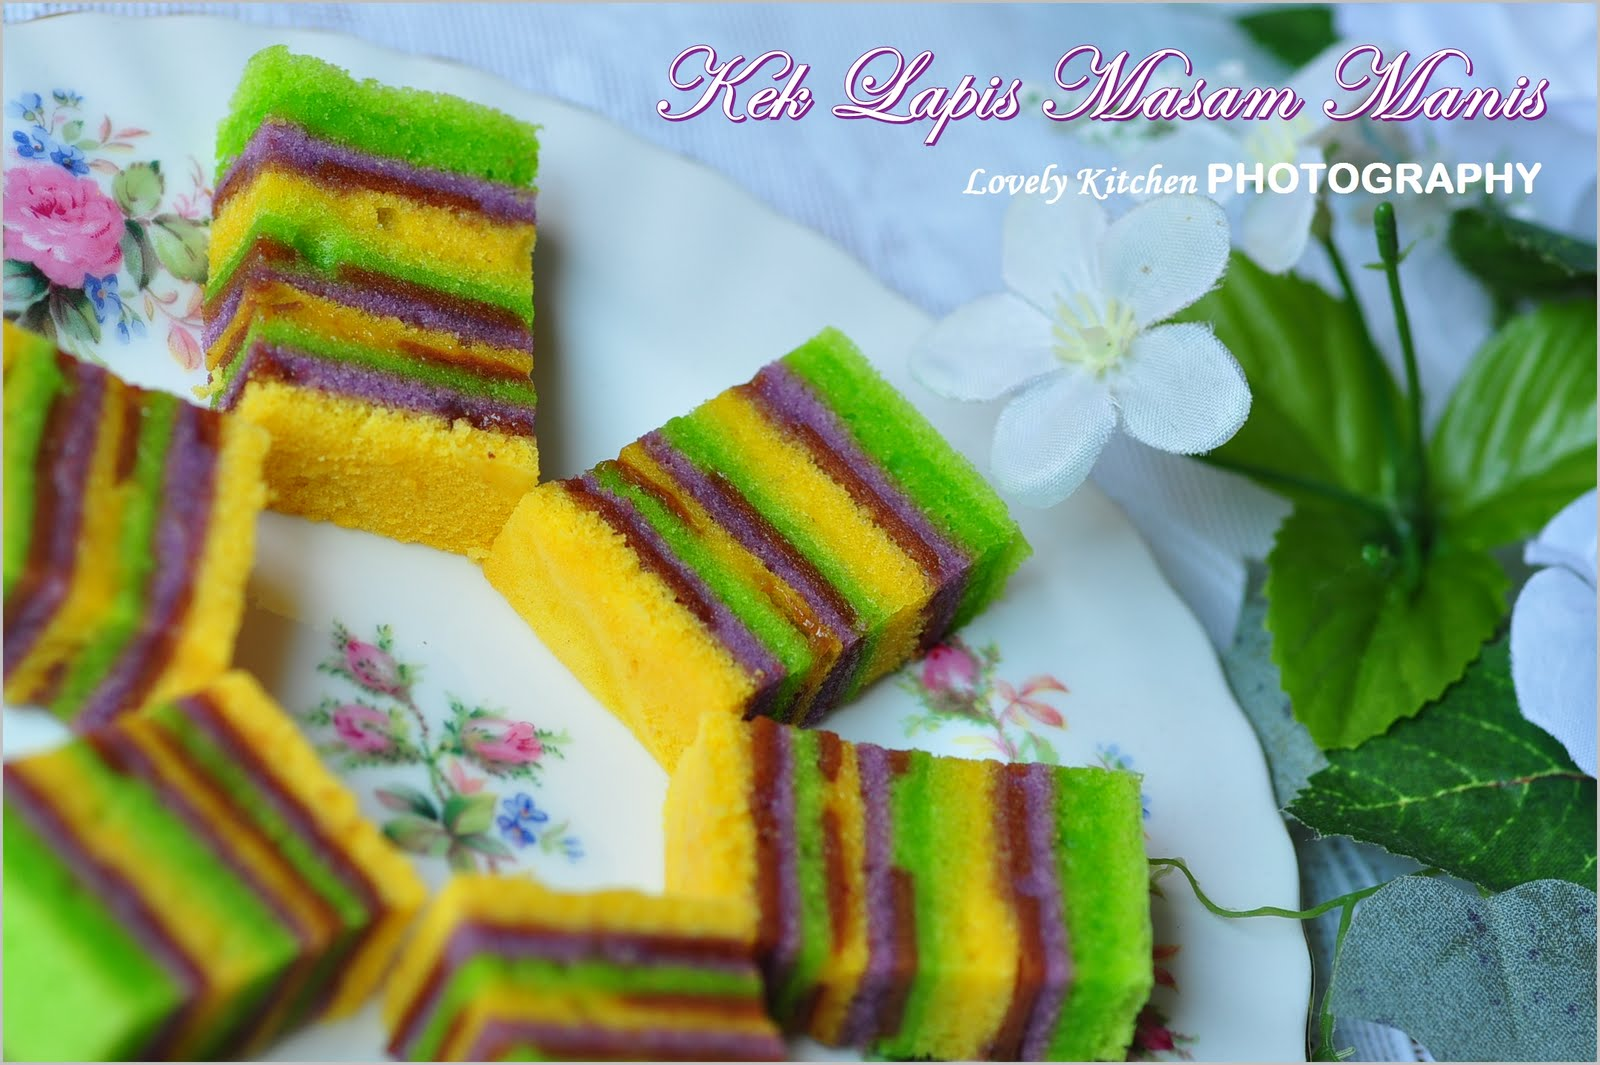 E-NA LOVELY KITCHEN ^_^: :-> Kek Lapis Masam Manis Kukus ...